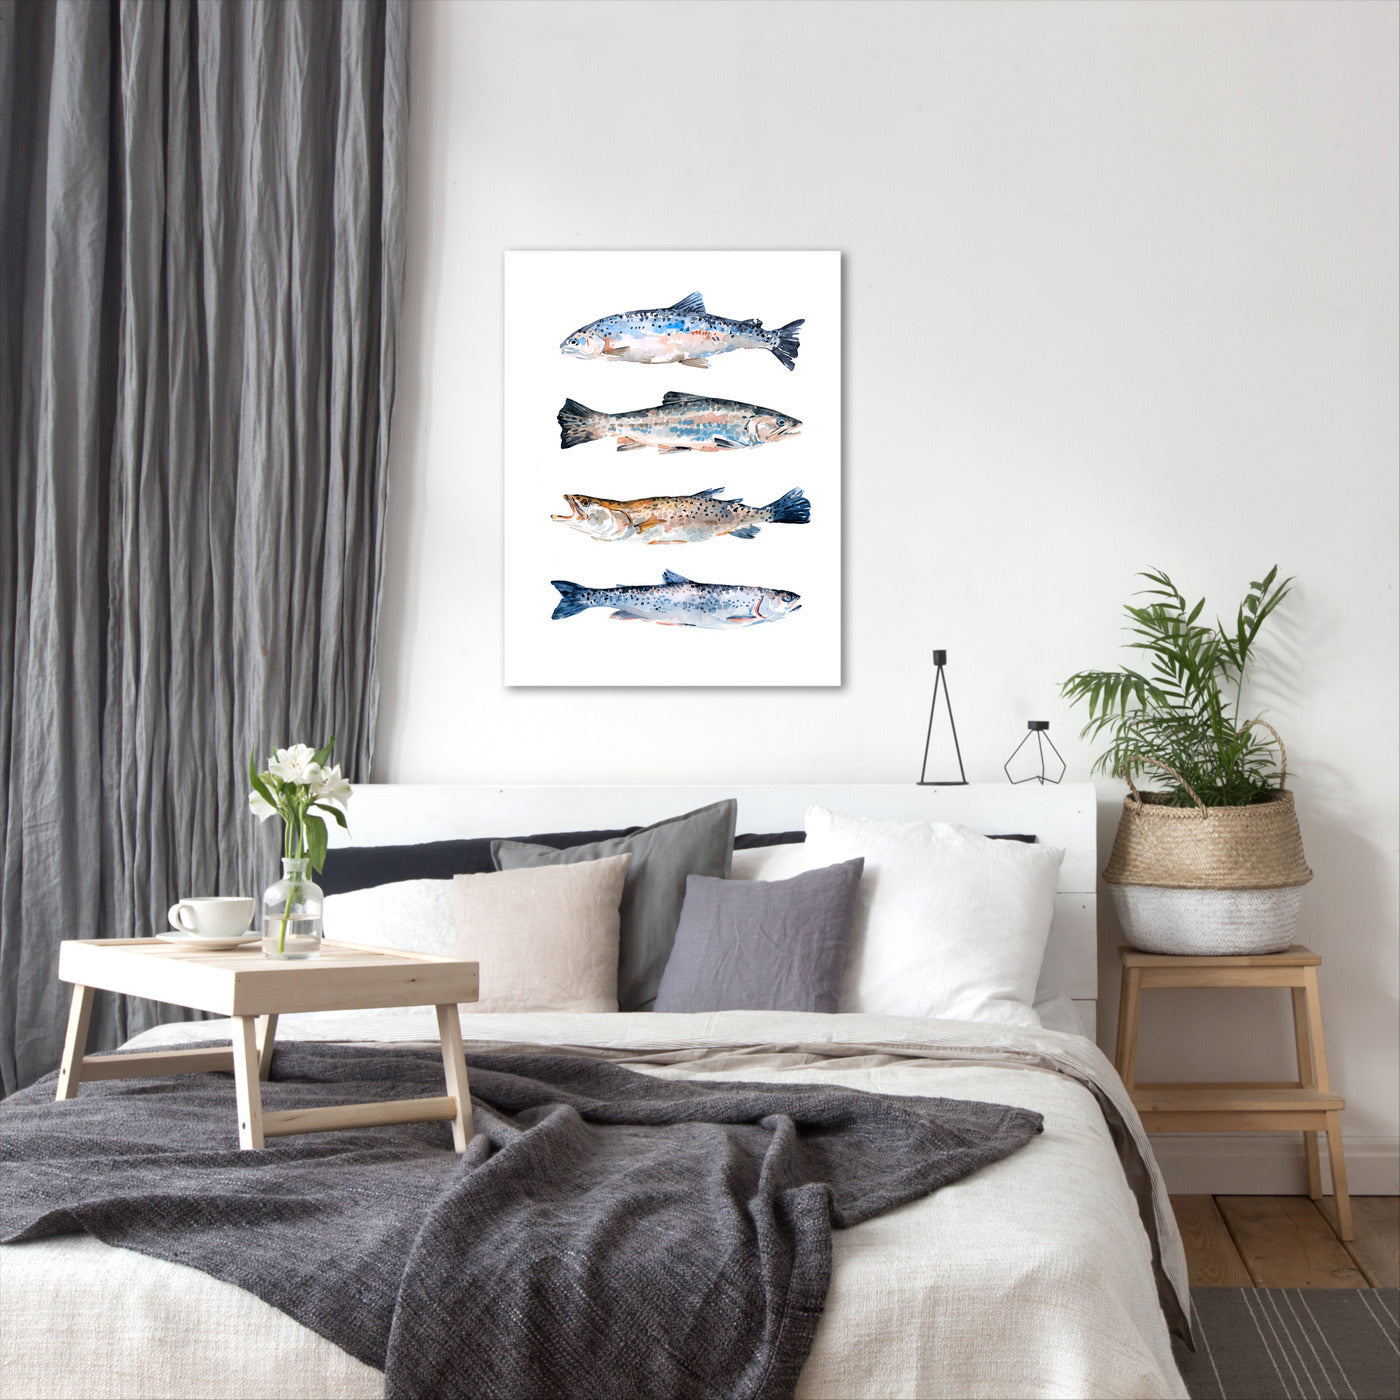 Stacked Trout II by Emma Scarvey by World Art Group - Wrapped Canvas - Wrapped Canvas - Americanflat